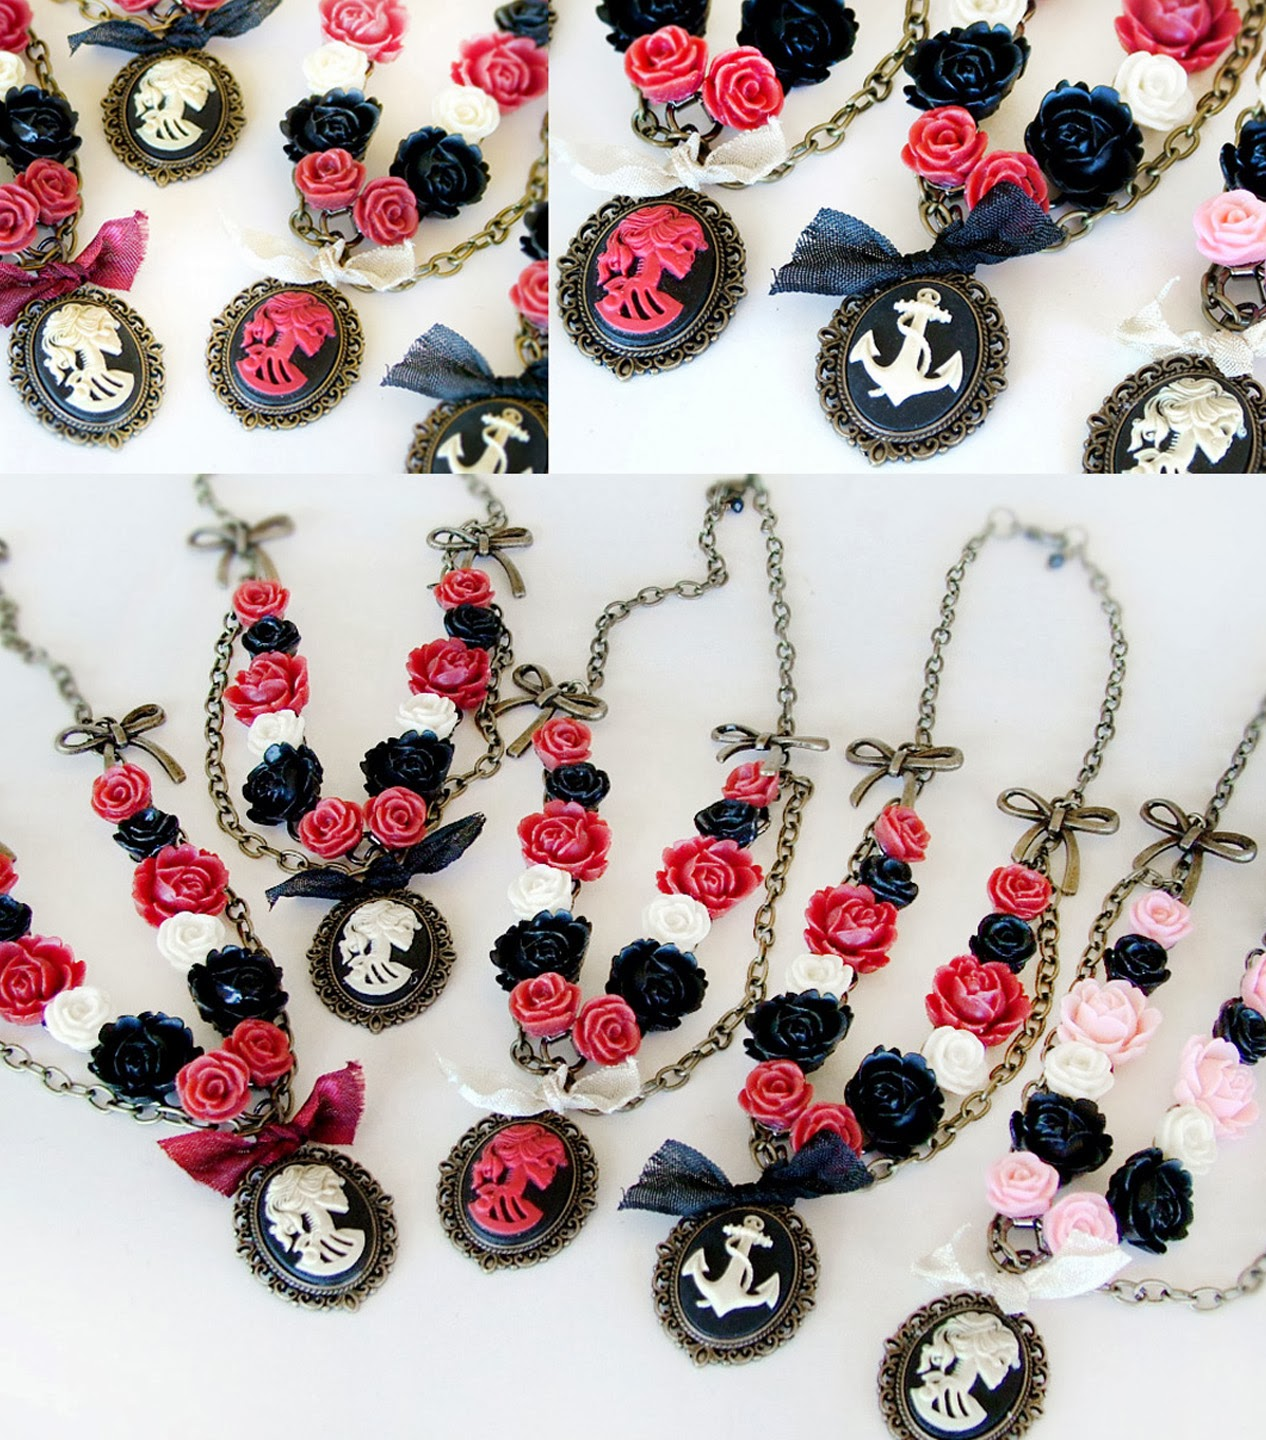 skull cameos with roses and antique bronze chain necklace